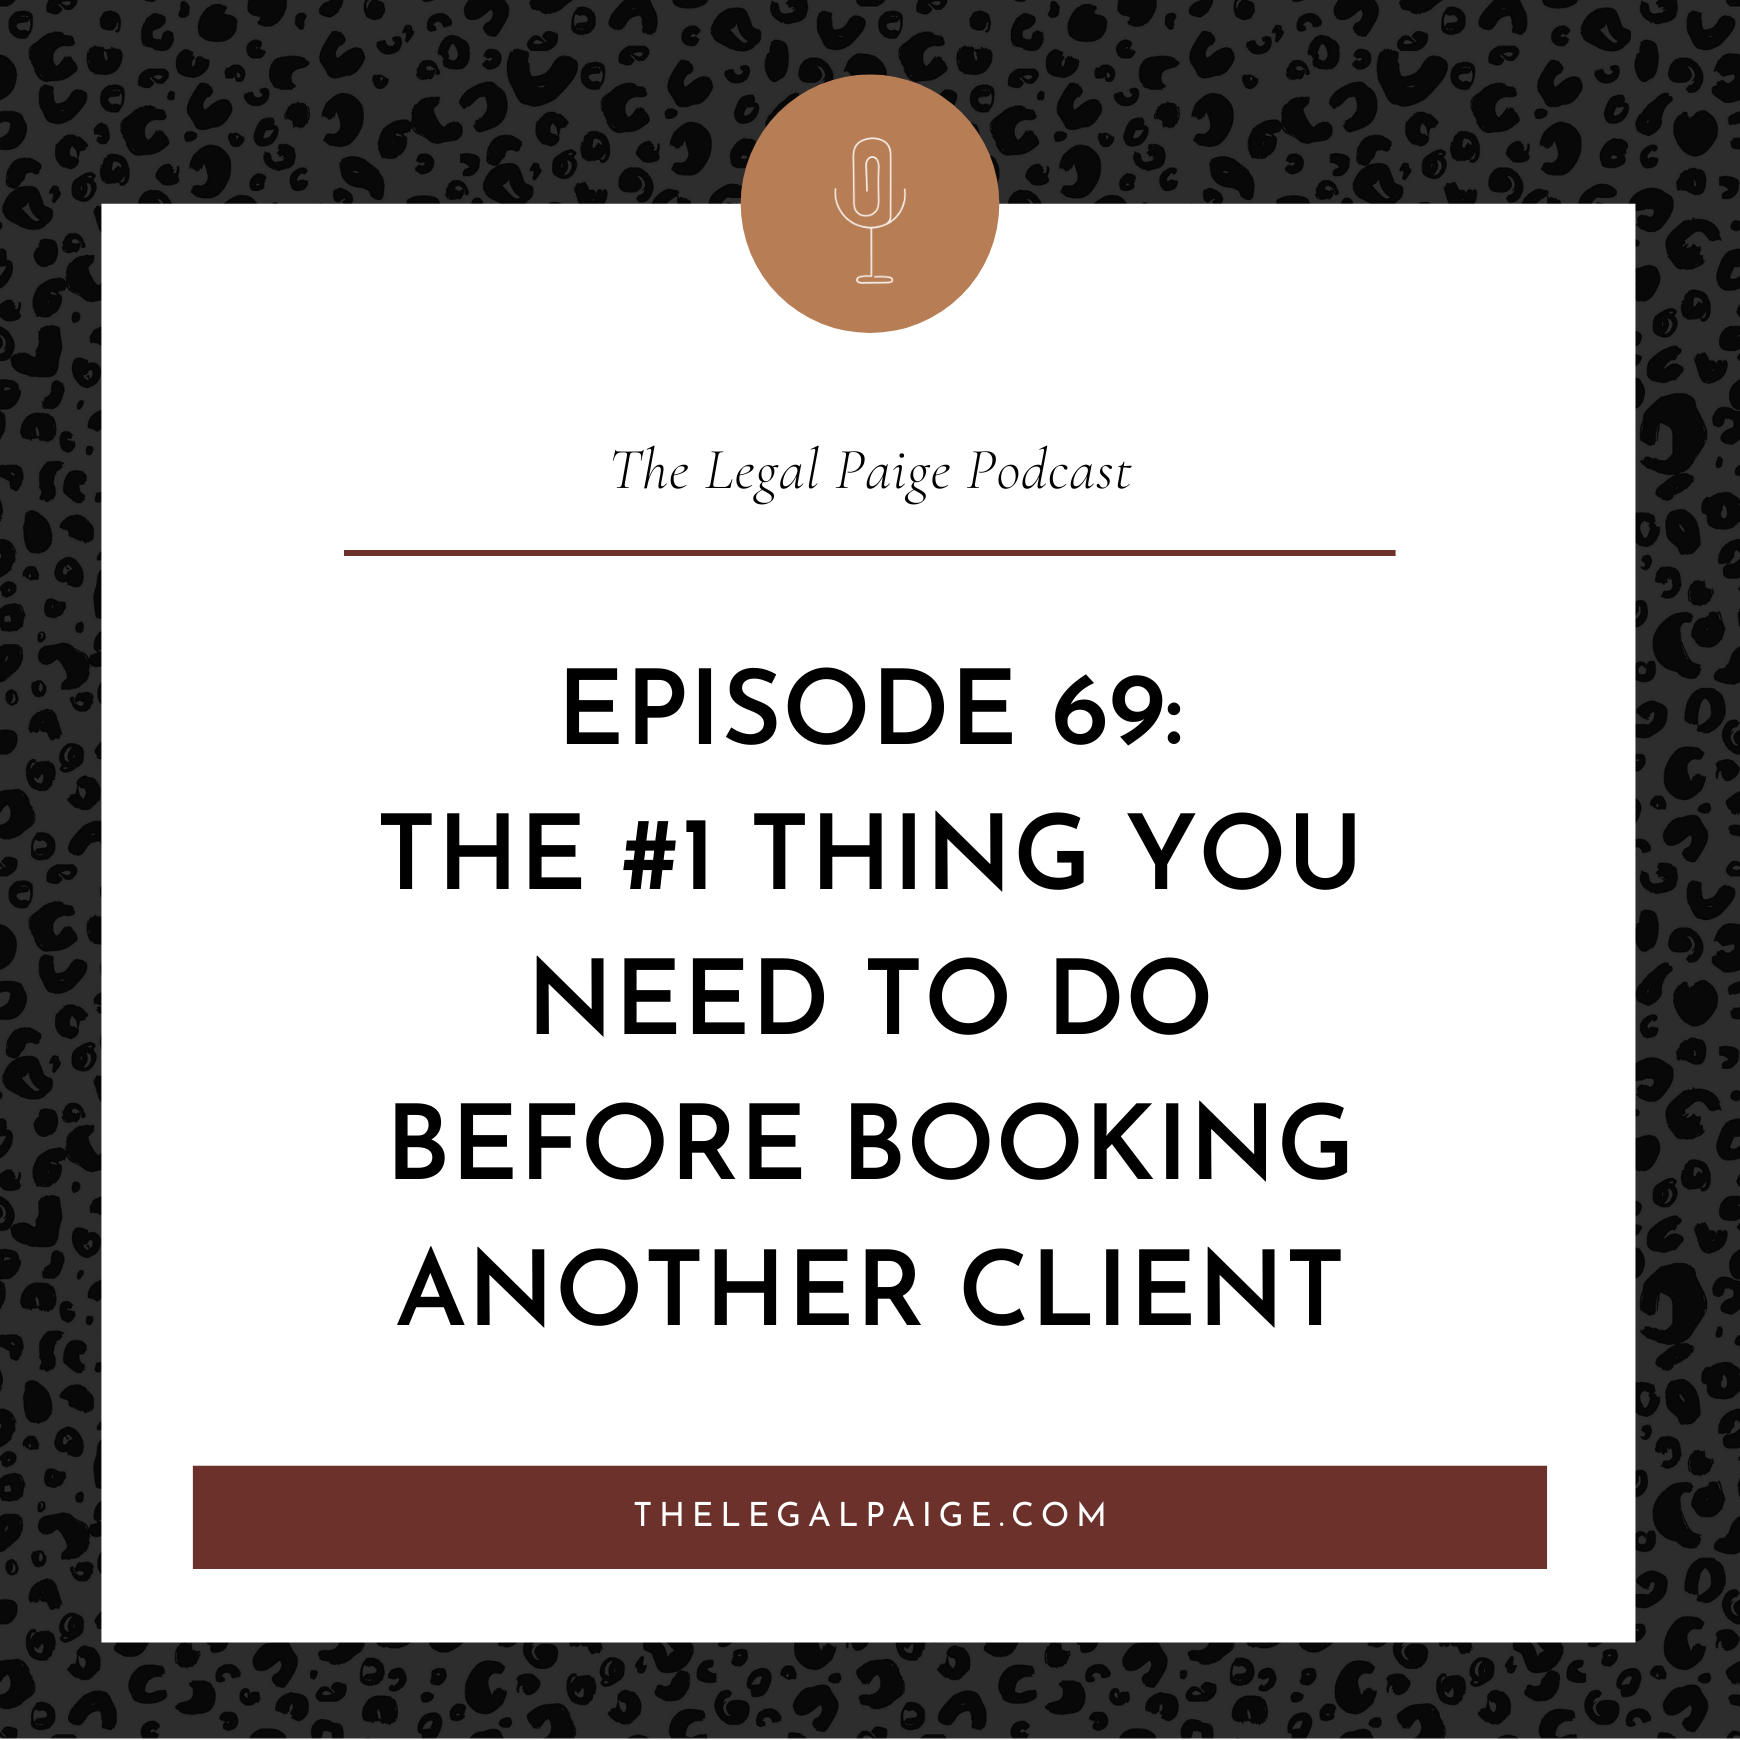 Ep 69: The #1 Thing You Need To Do Before Booking Another Client